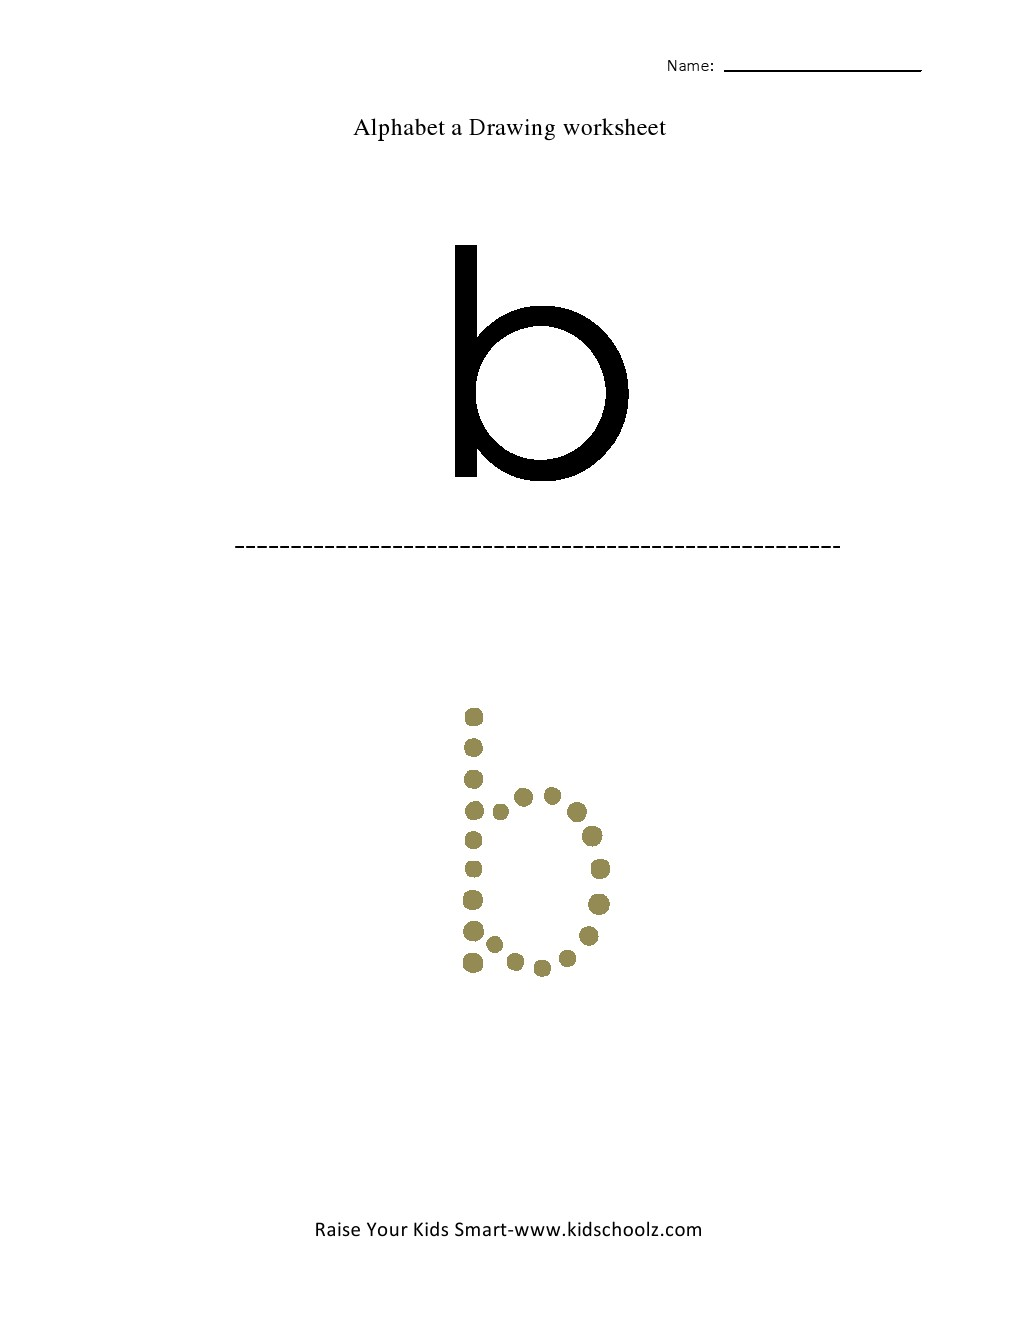 Tracing Small Letter Alphabets - b - Kidschoolz